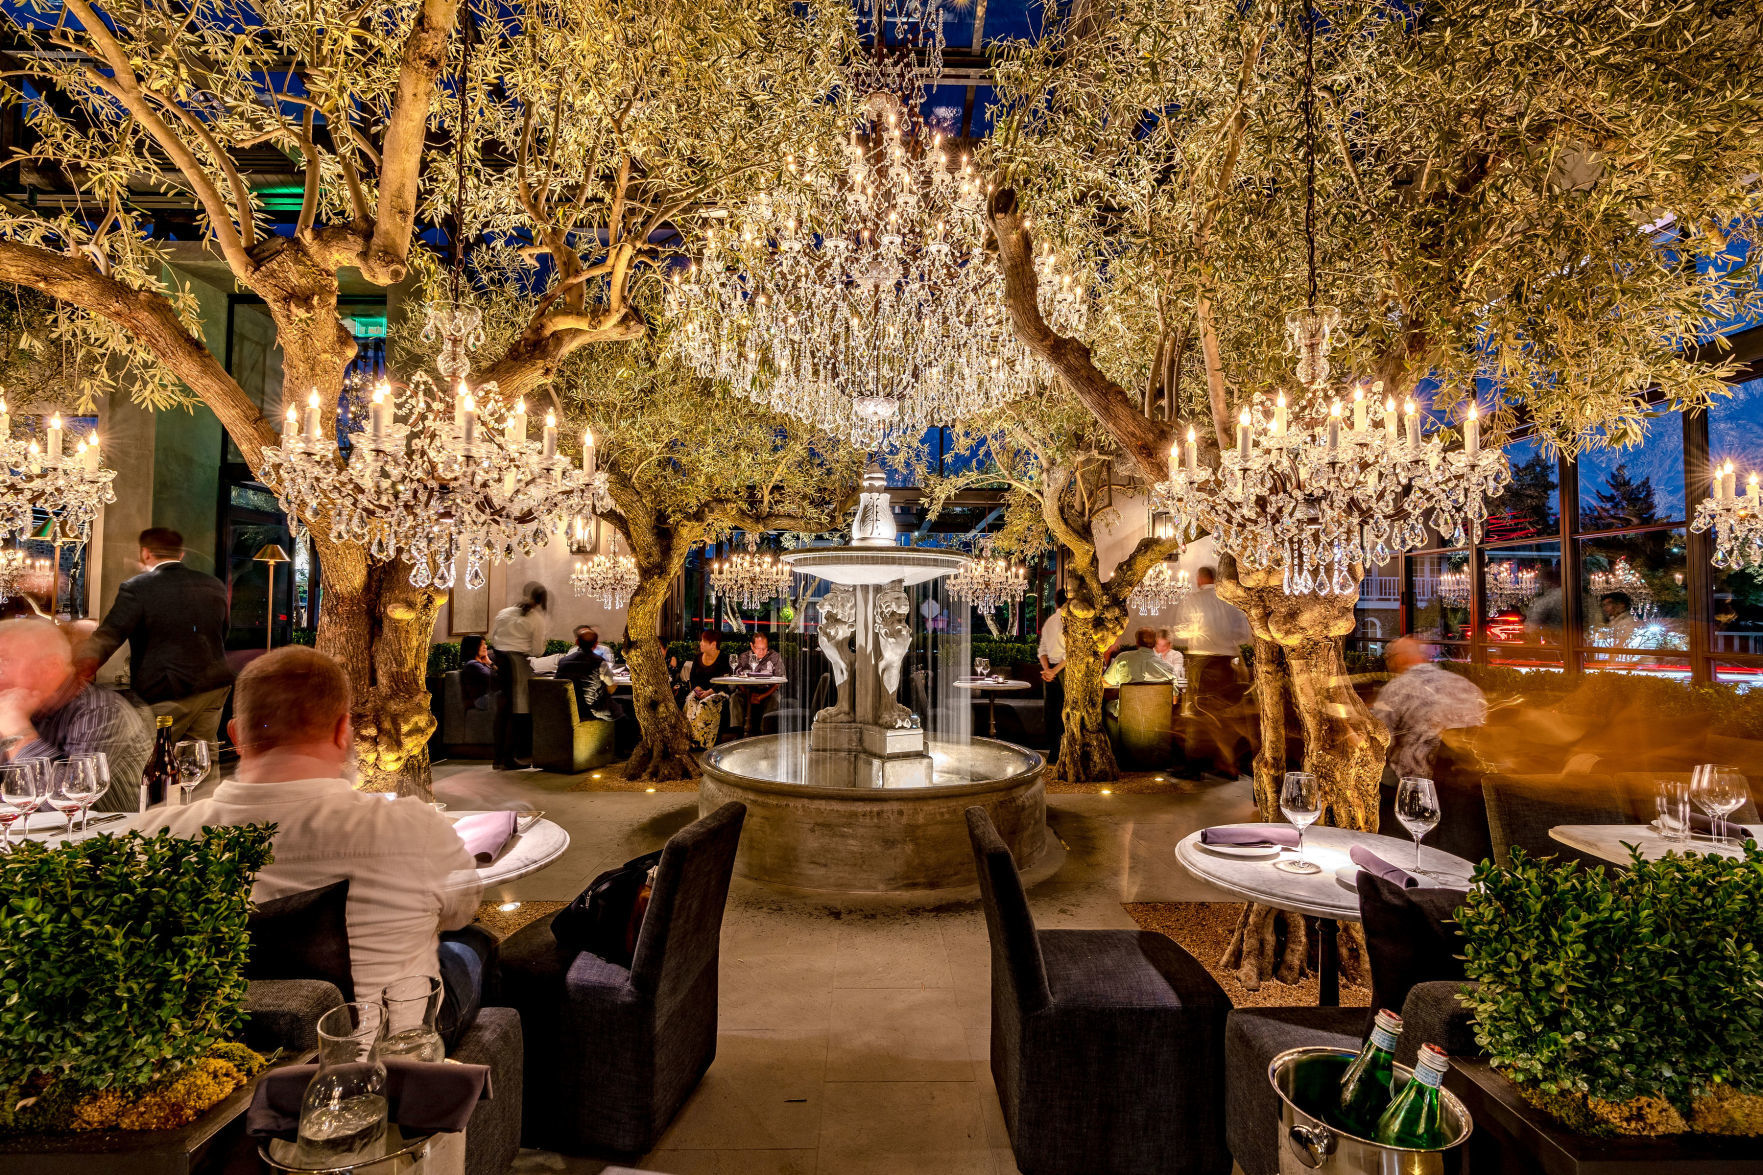 Behind The Eye Candy A Look At Restoration Hardware S New Yountville Complex Local News Napavalleyregister Com